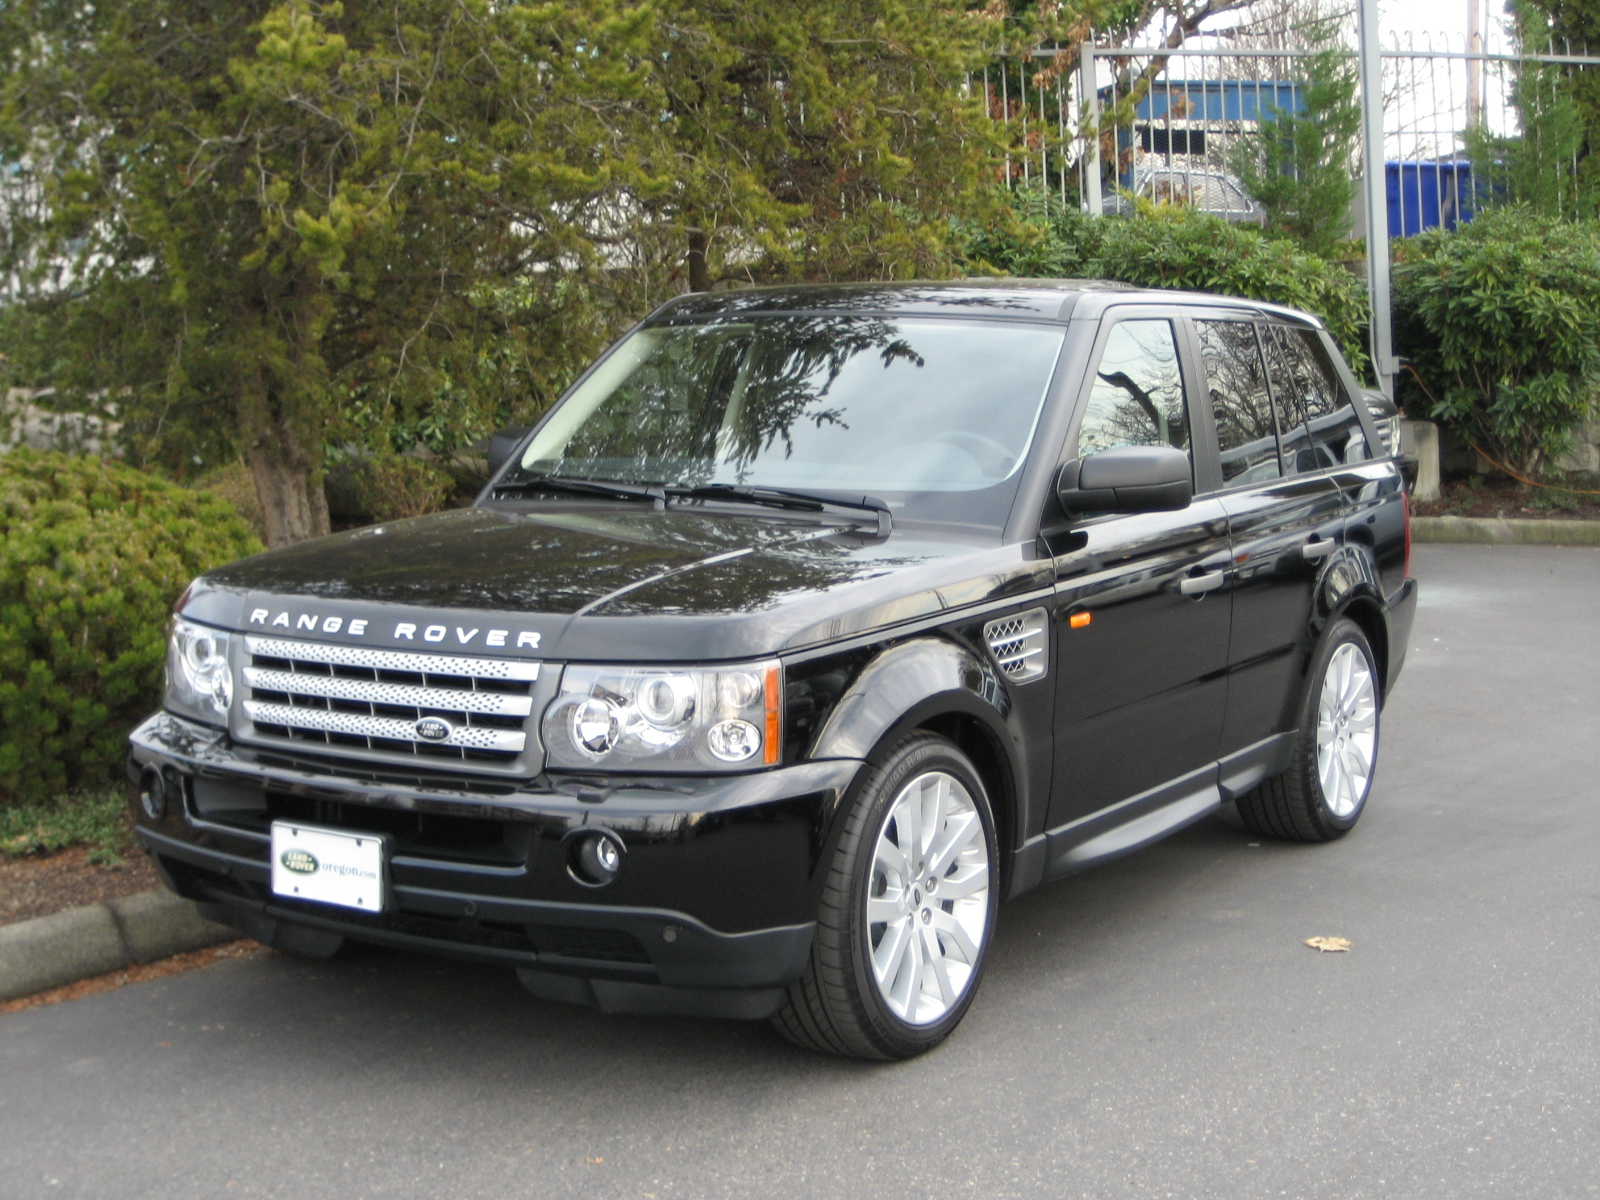 file 2007 range rover sport wikimedia commons. Black Bedroom Furniture Sets. Home Design Ideas